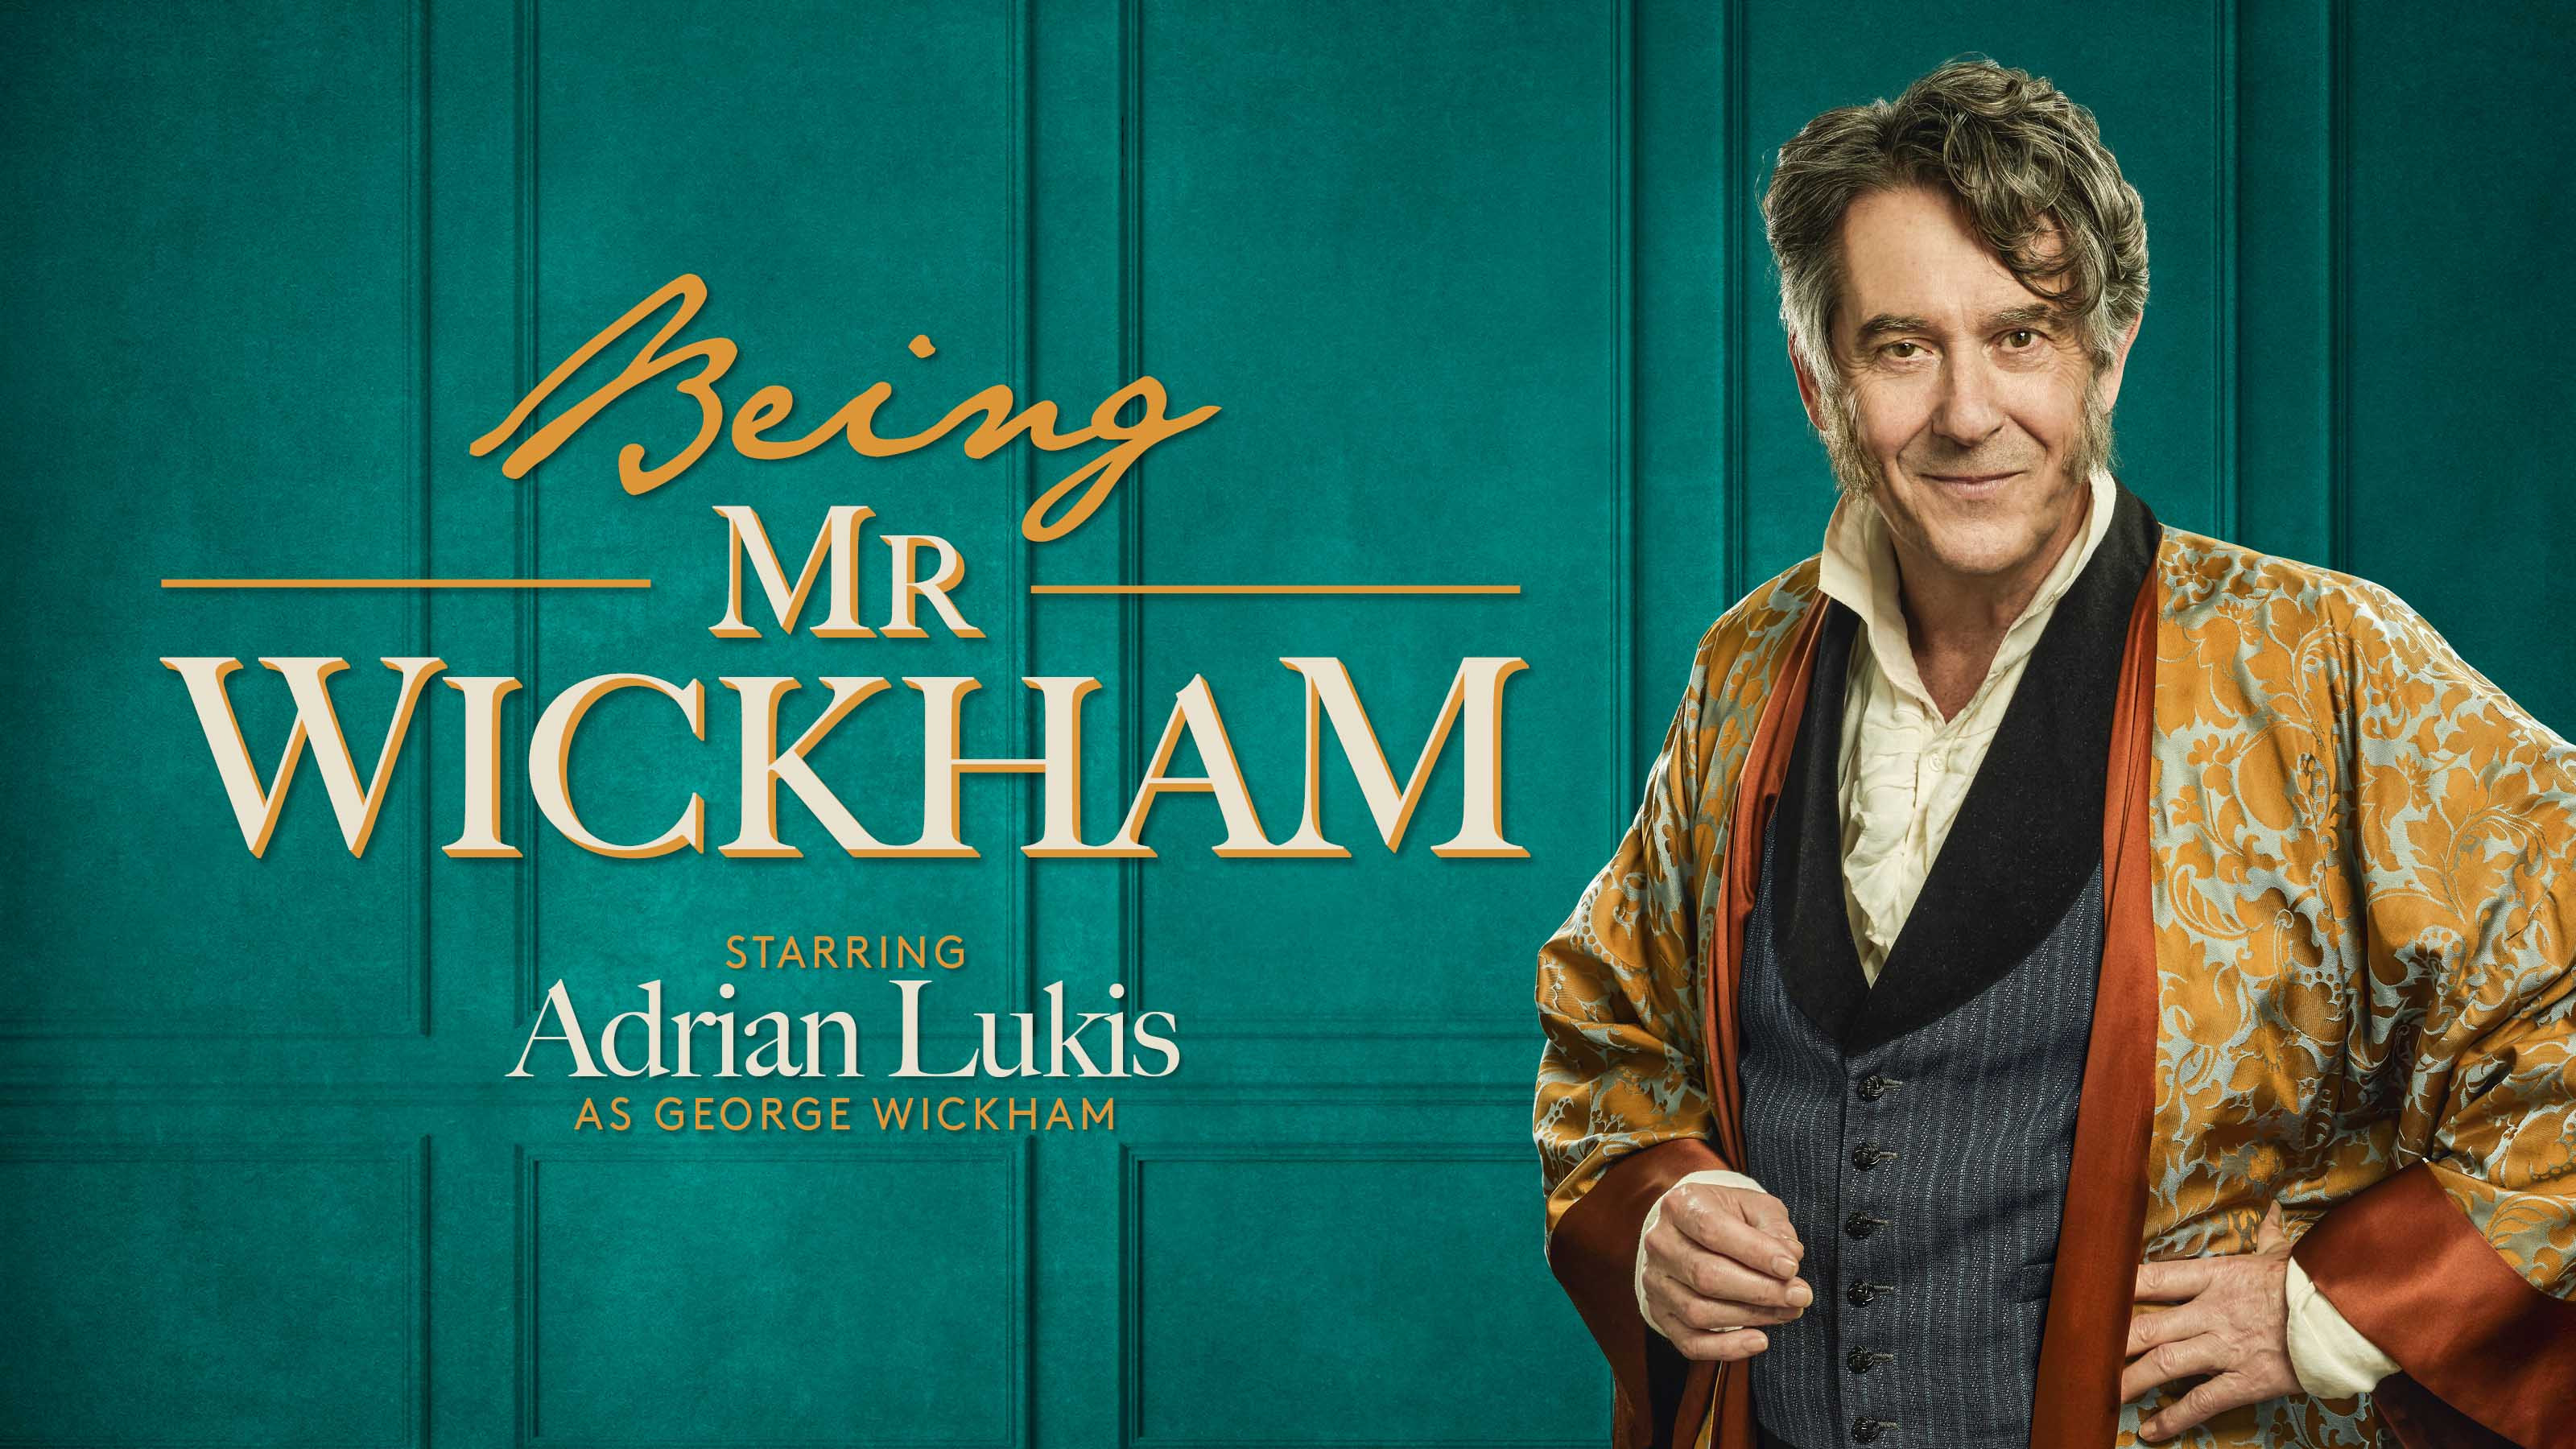 Being Mr Wickham – Live Streaming, Friday 30 April at 7.30pm (BST)